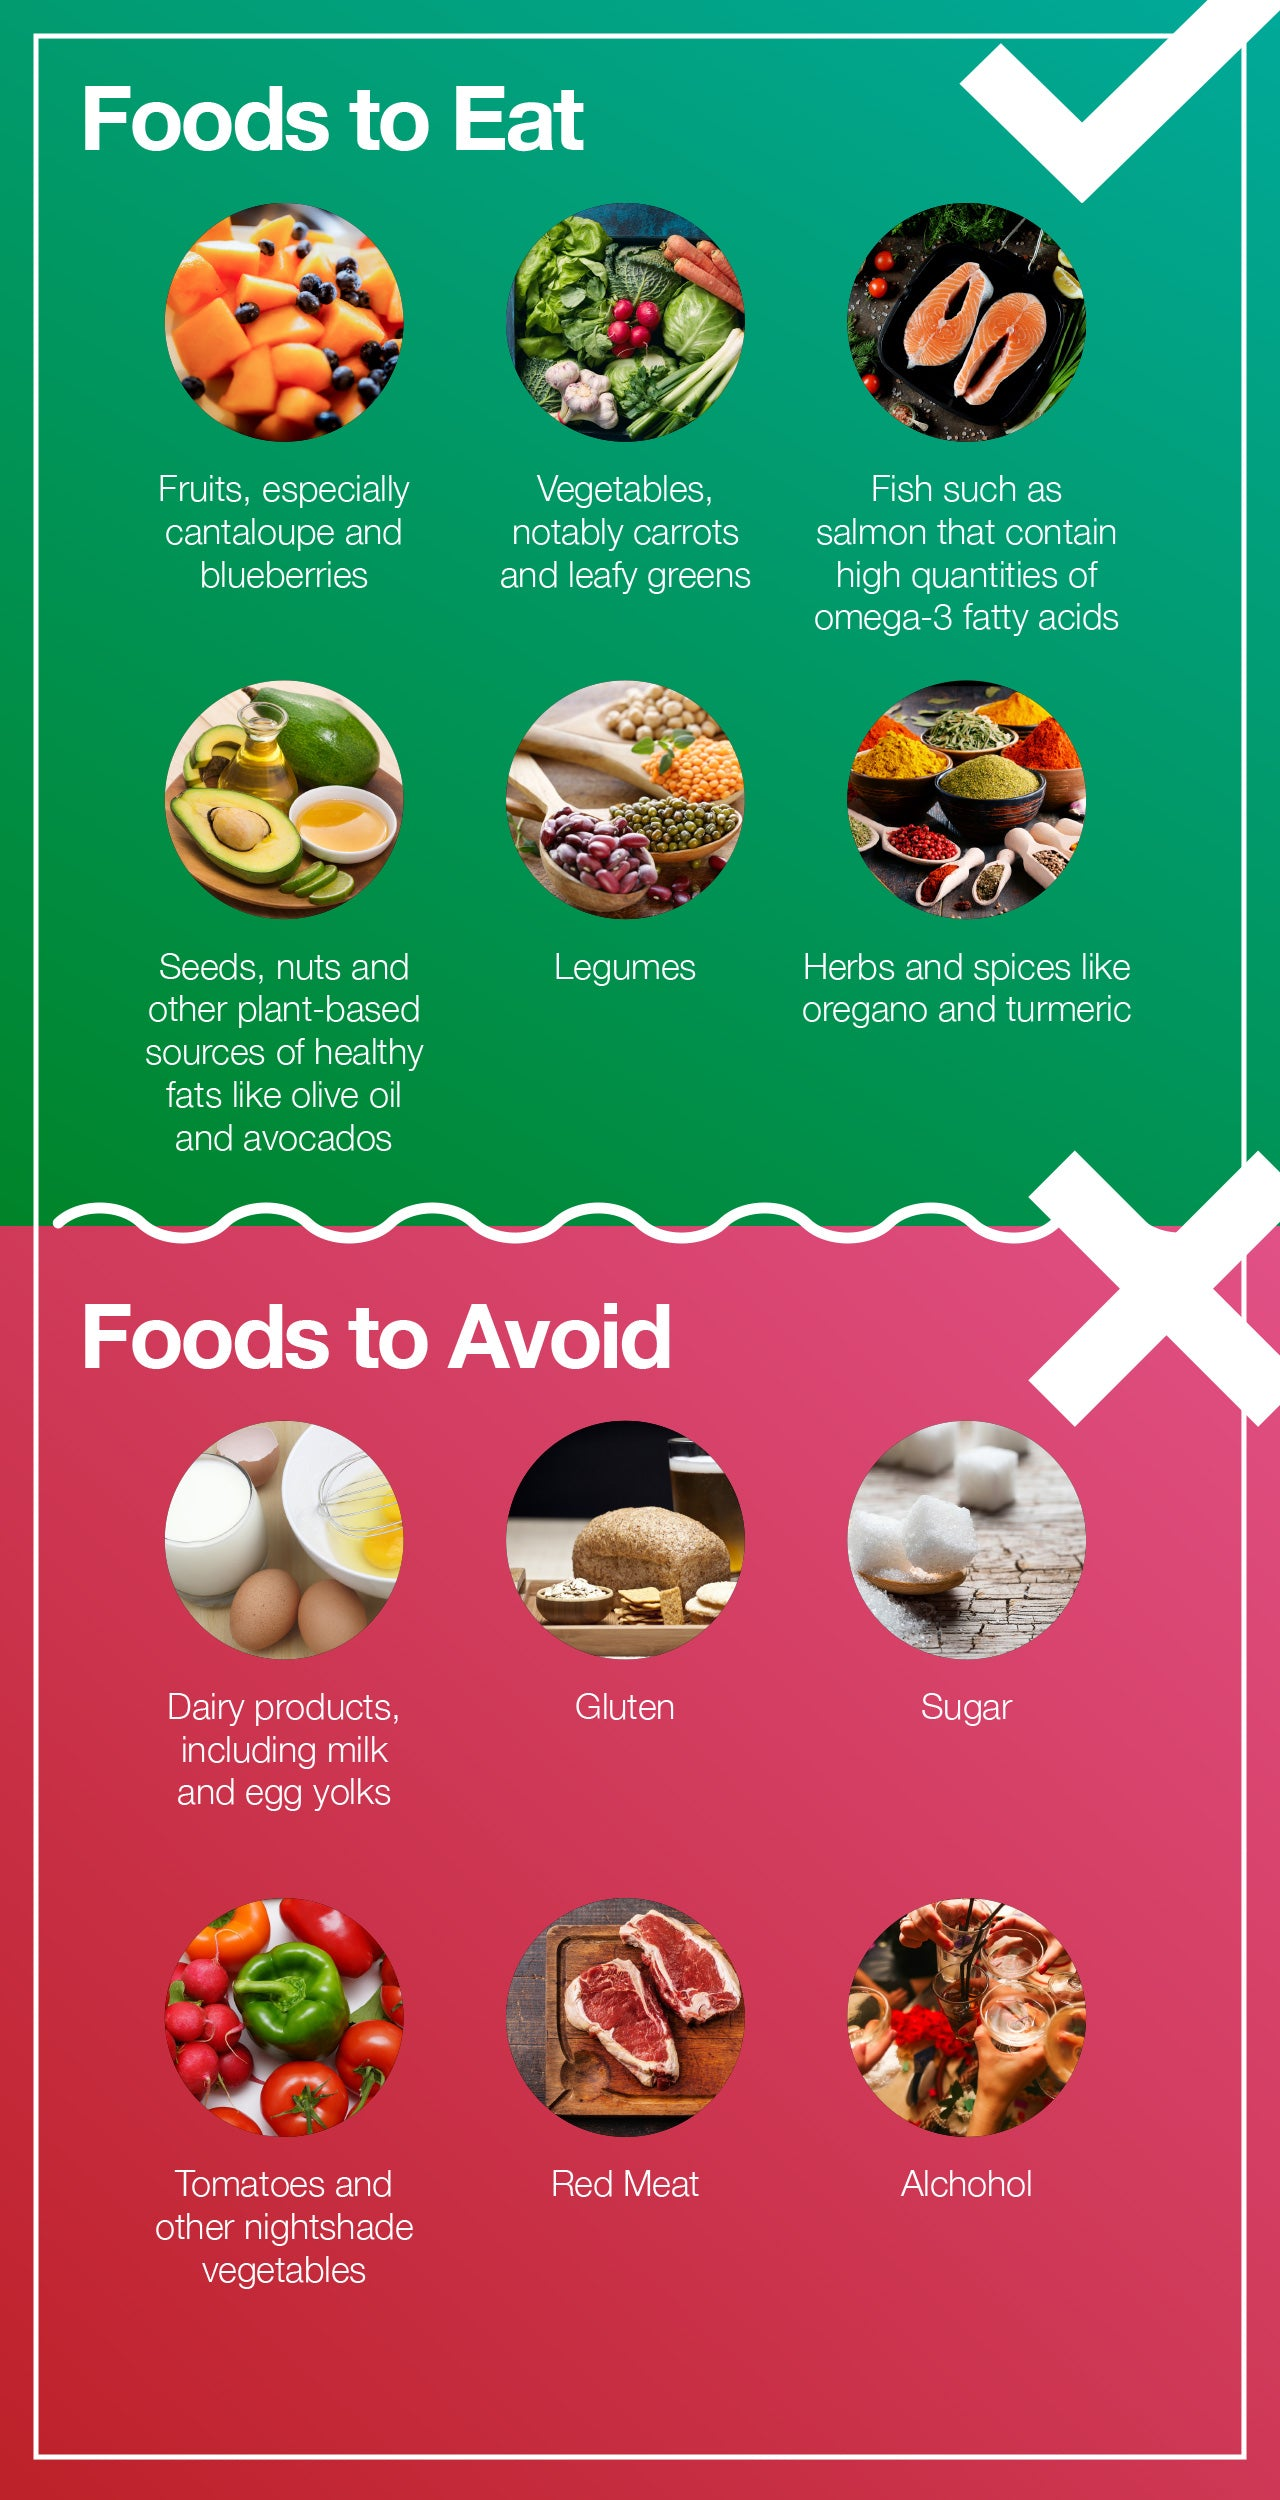 Psoriasis diet foods to eat and foods to avoid